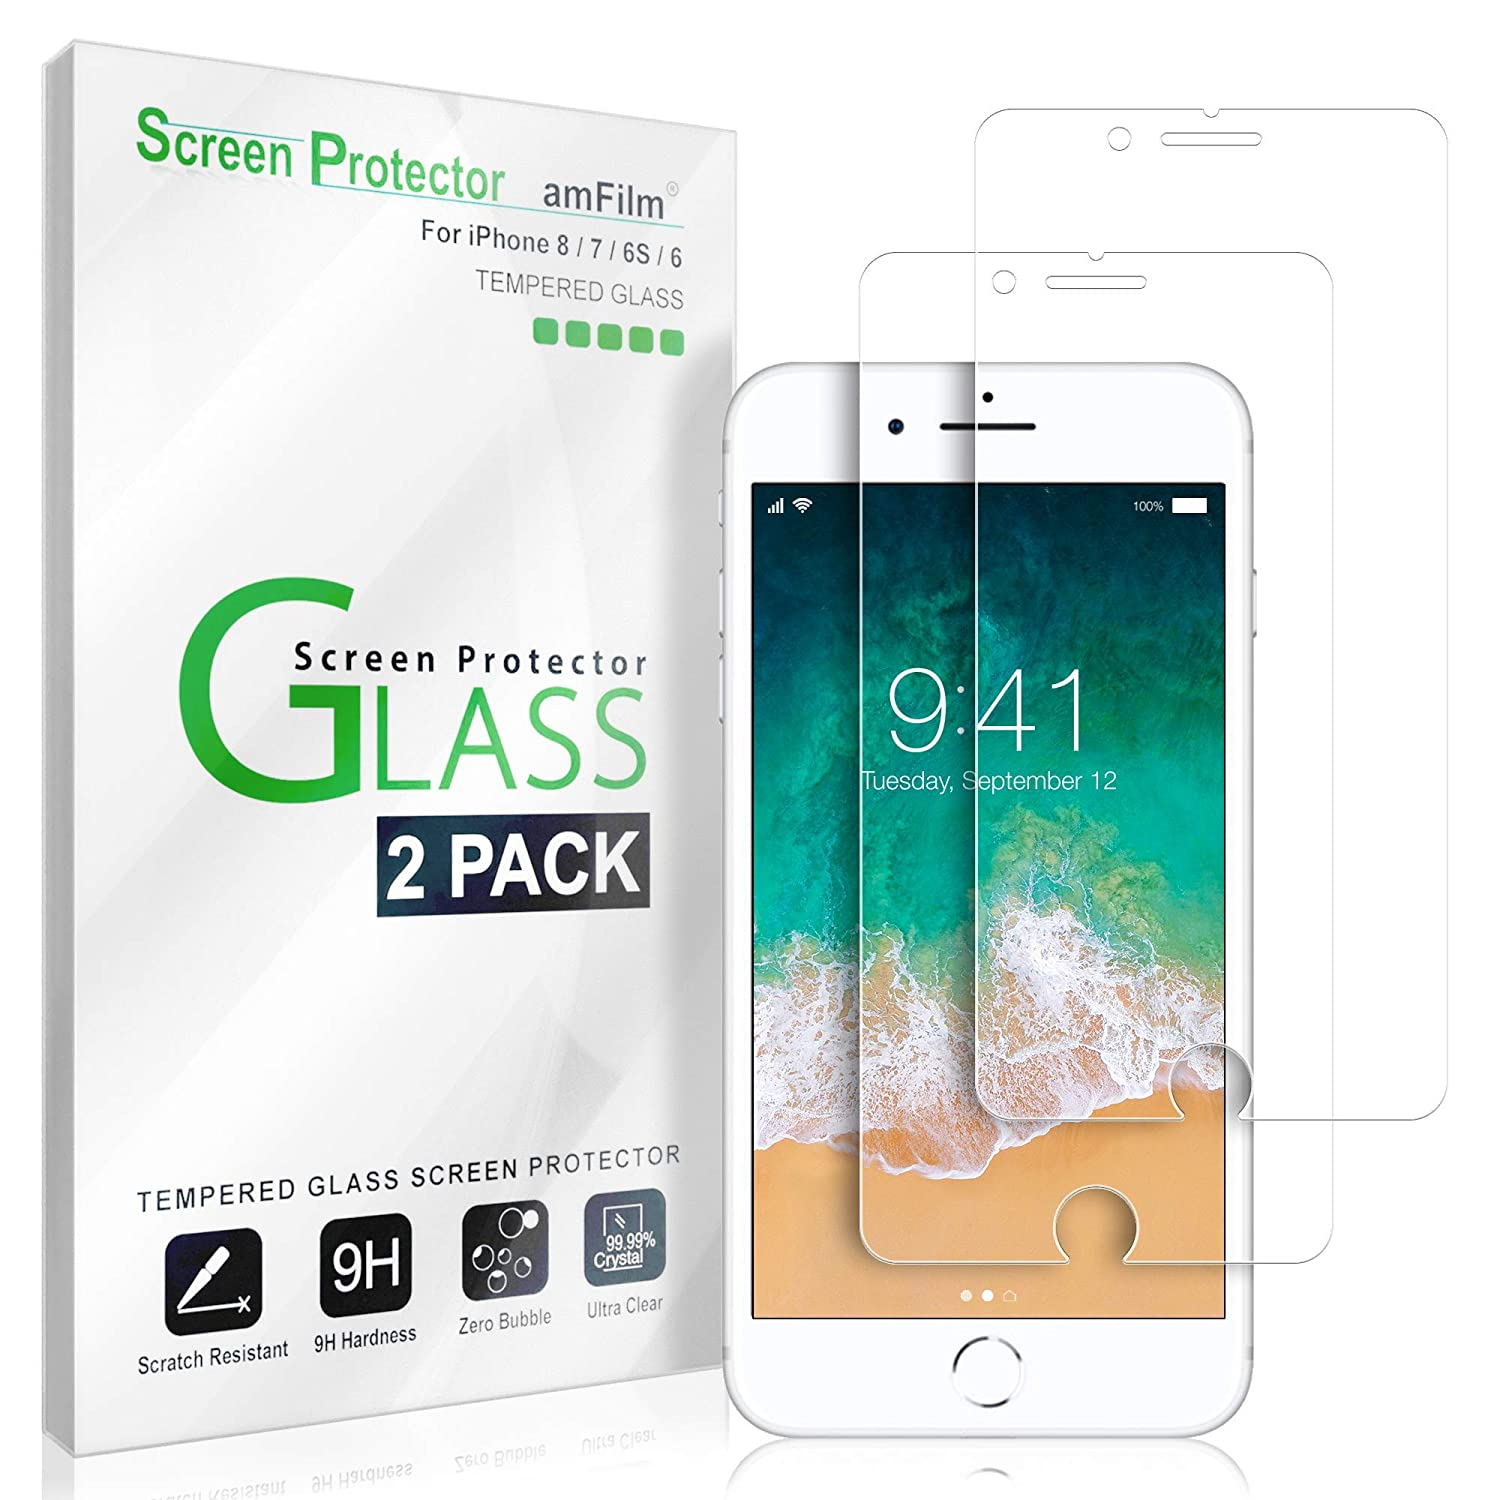 Amfilm Iphone 8 7 6s 6 Screen Protector Glass Tempered Xr Glastr Slim Hd Original For Apple 47inch